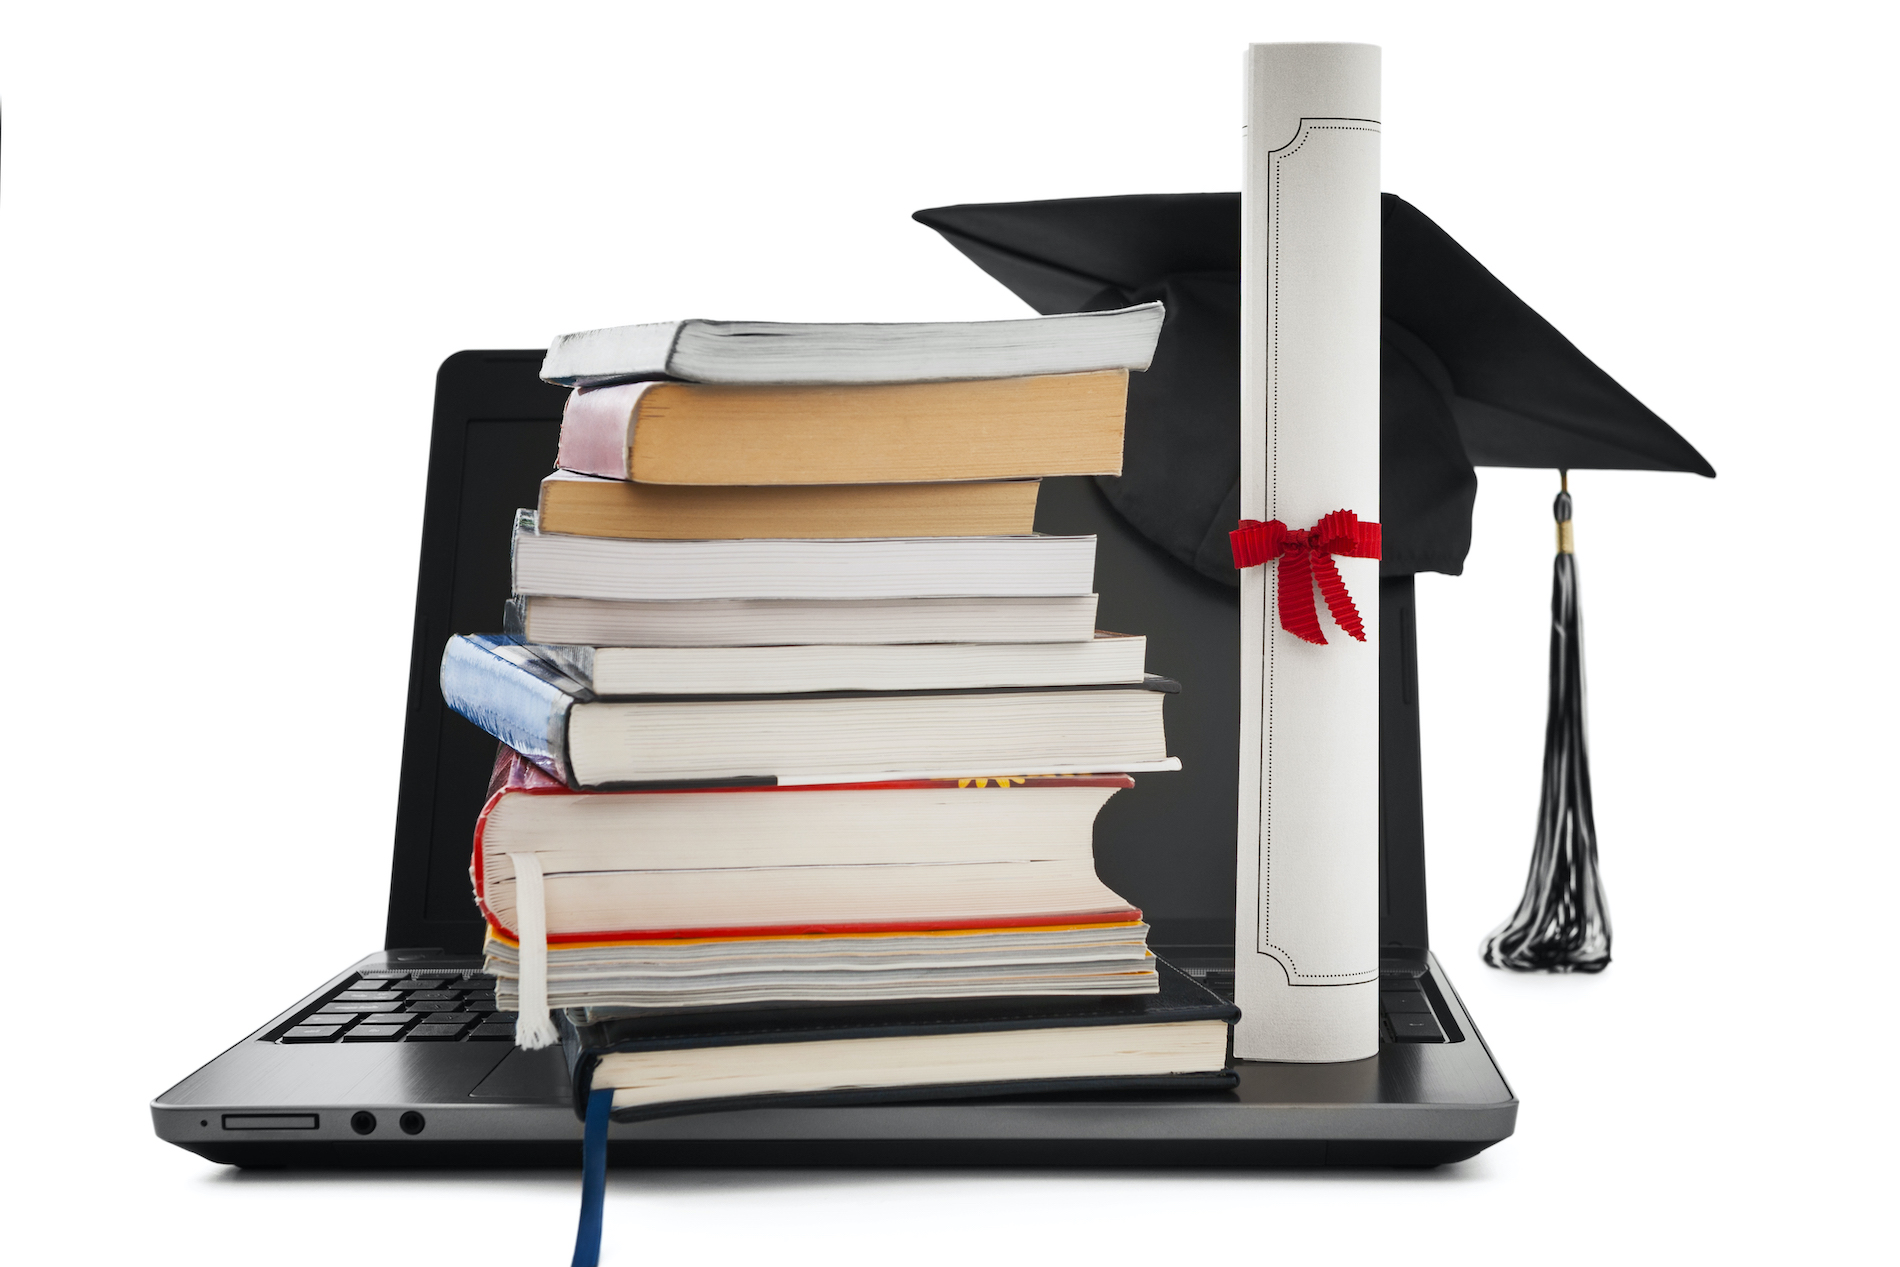 Which one is better for your Higher Education